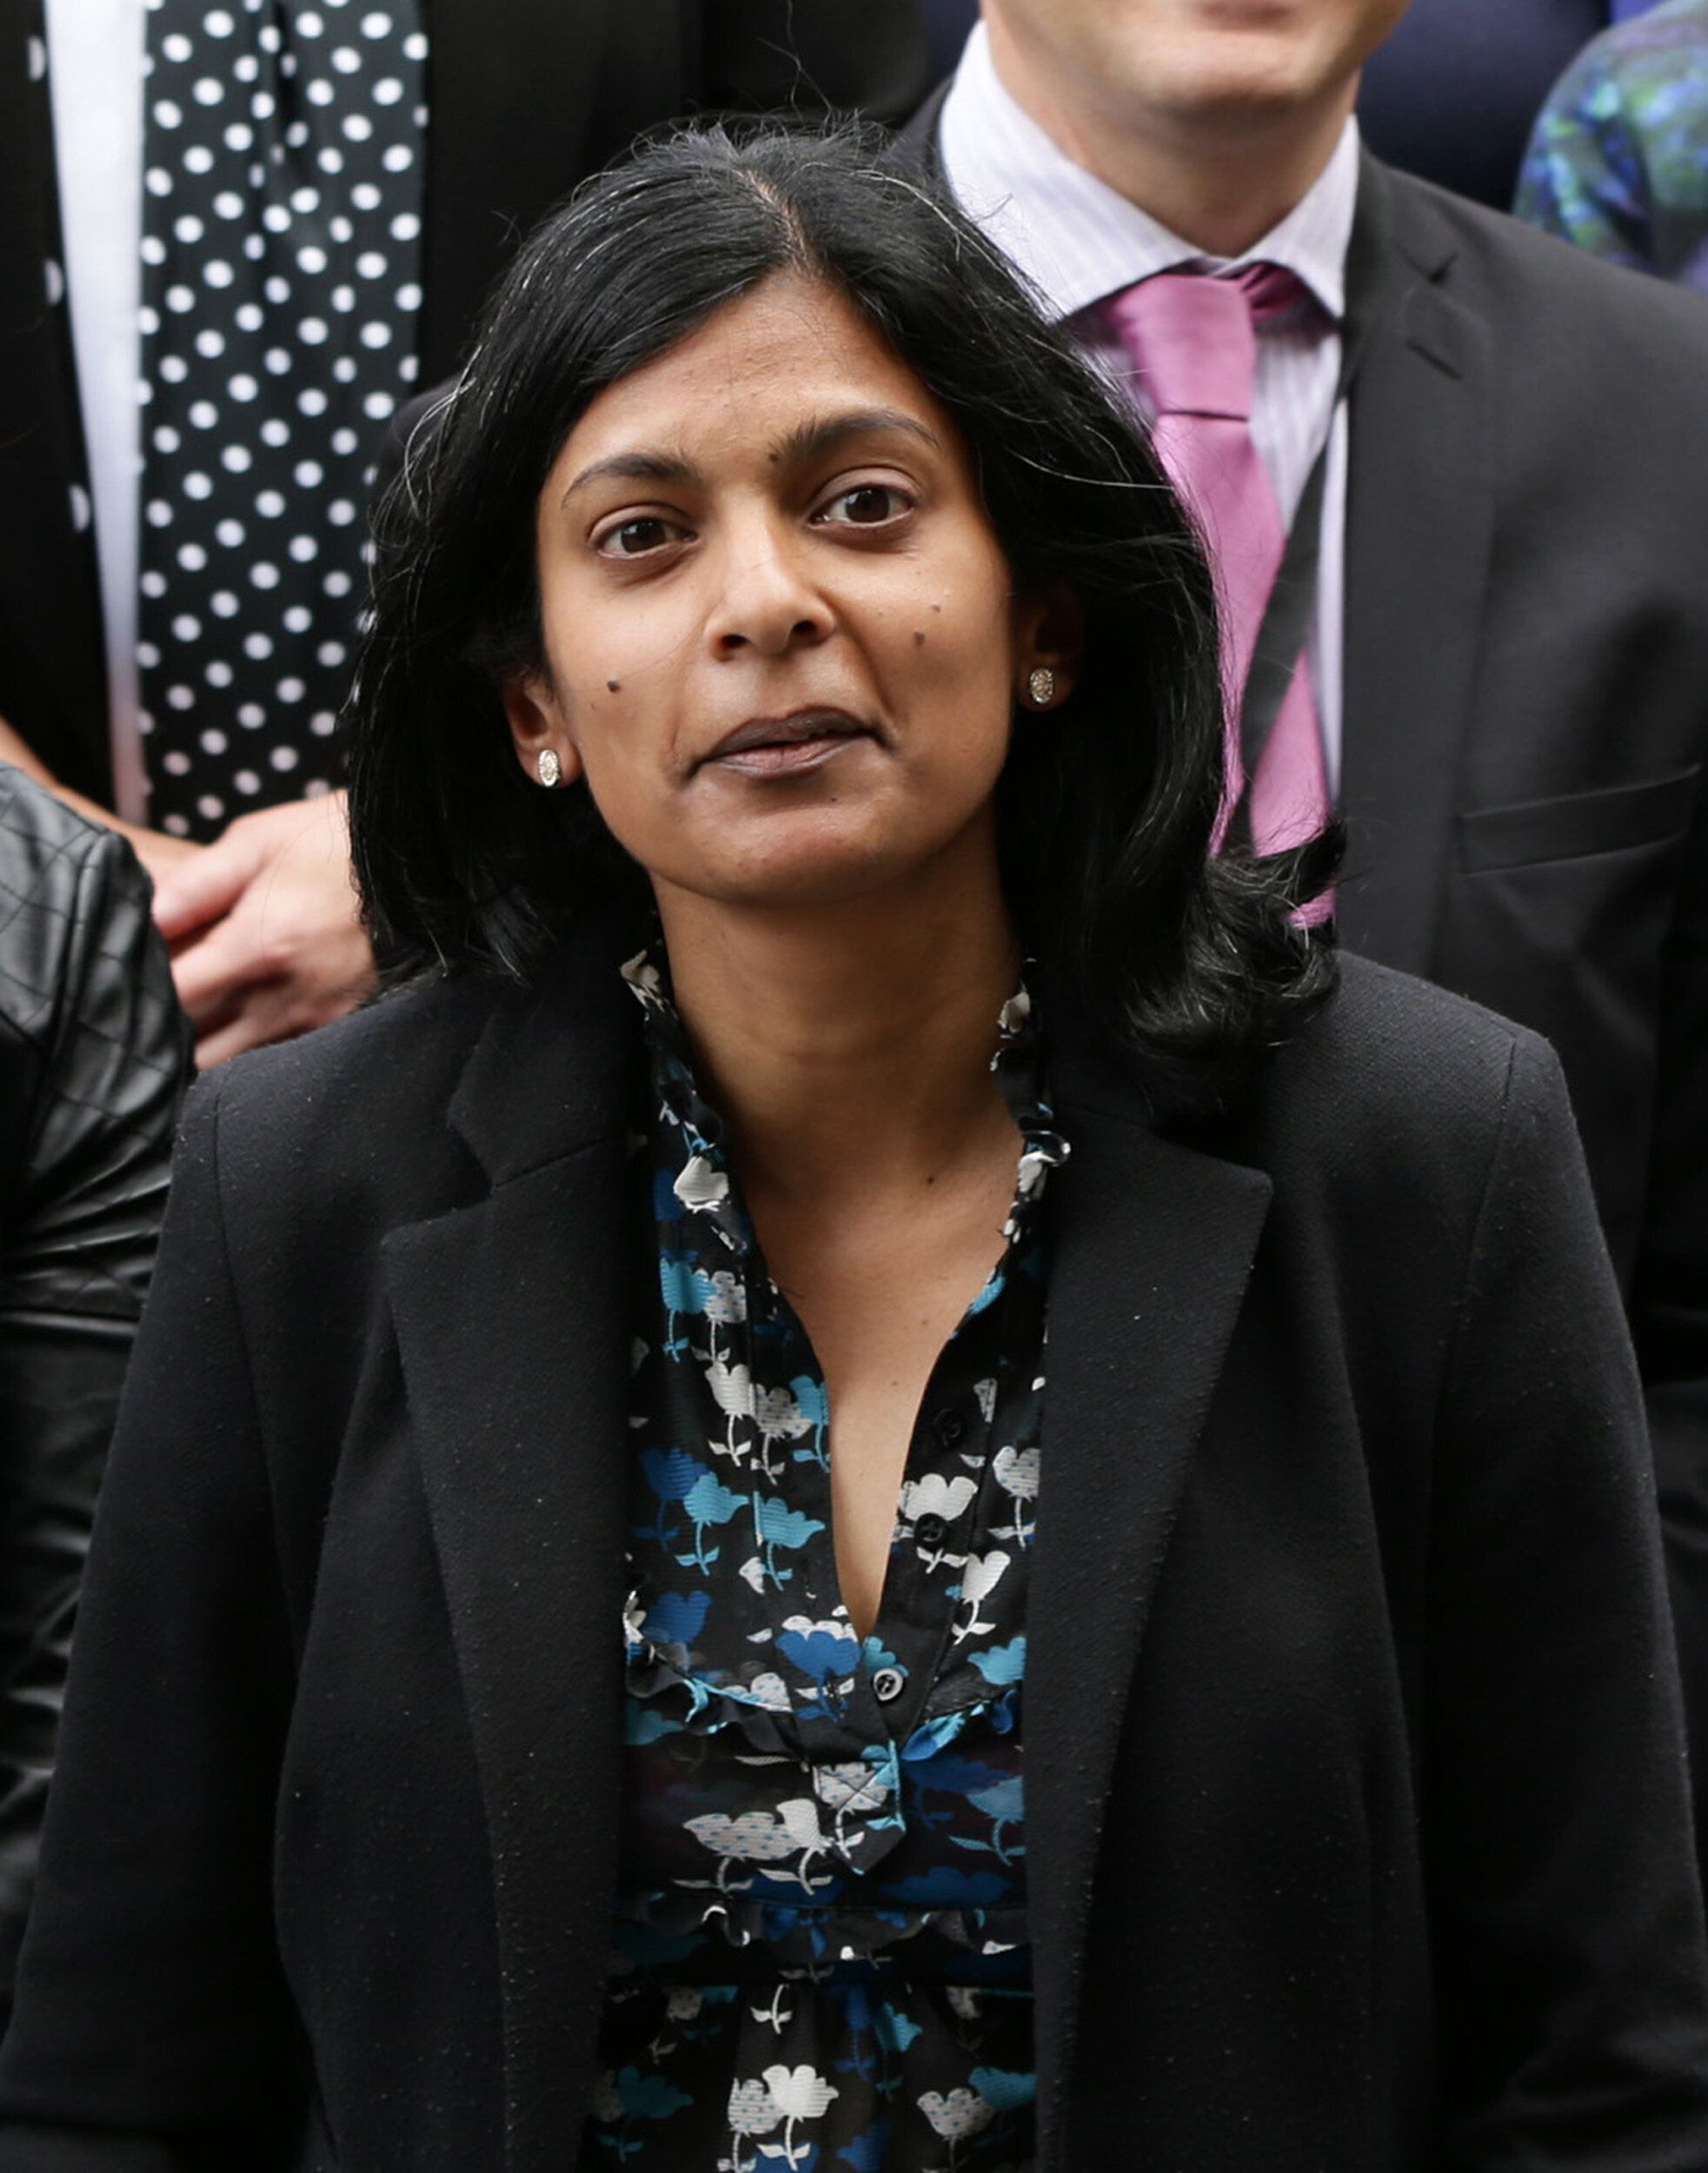 File photo dated 12/05/15 of Rupa Huq MP, who has labelled BBC sitcom Citizen Khan as Islamophobic, suggesting she would not be surprised if a future episode features cutting people's hands off.